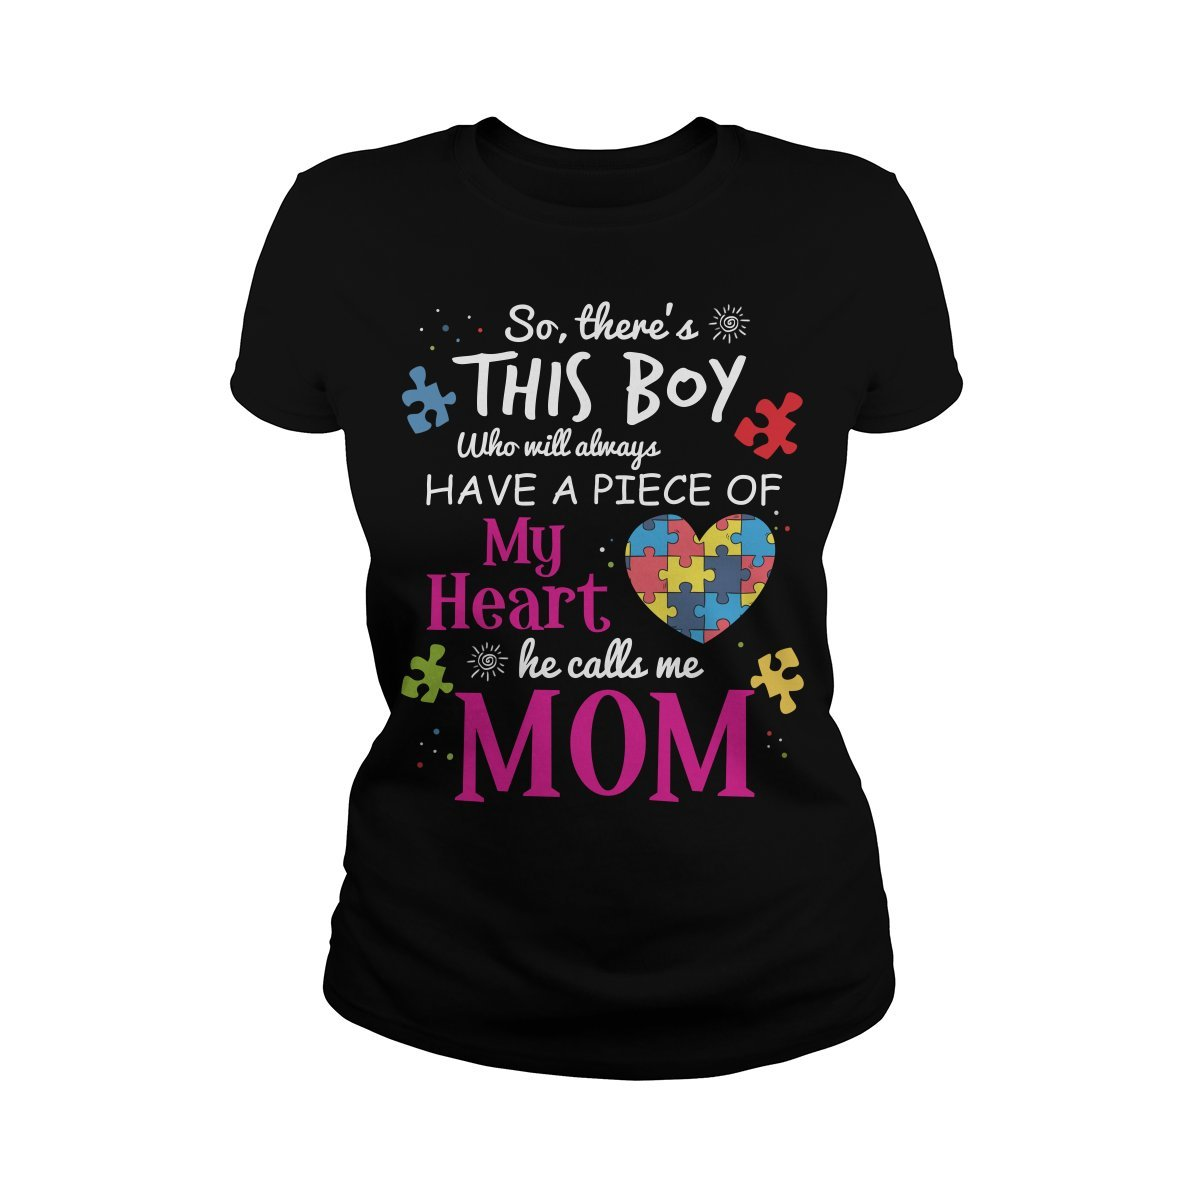 Ladies Tee Black Large So There's This boy who Will Always Have a Piece of My Heart he Calls me mom TShirt